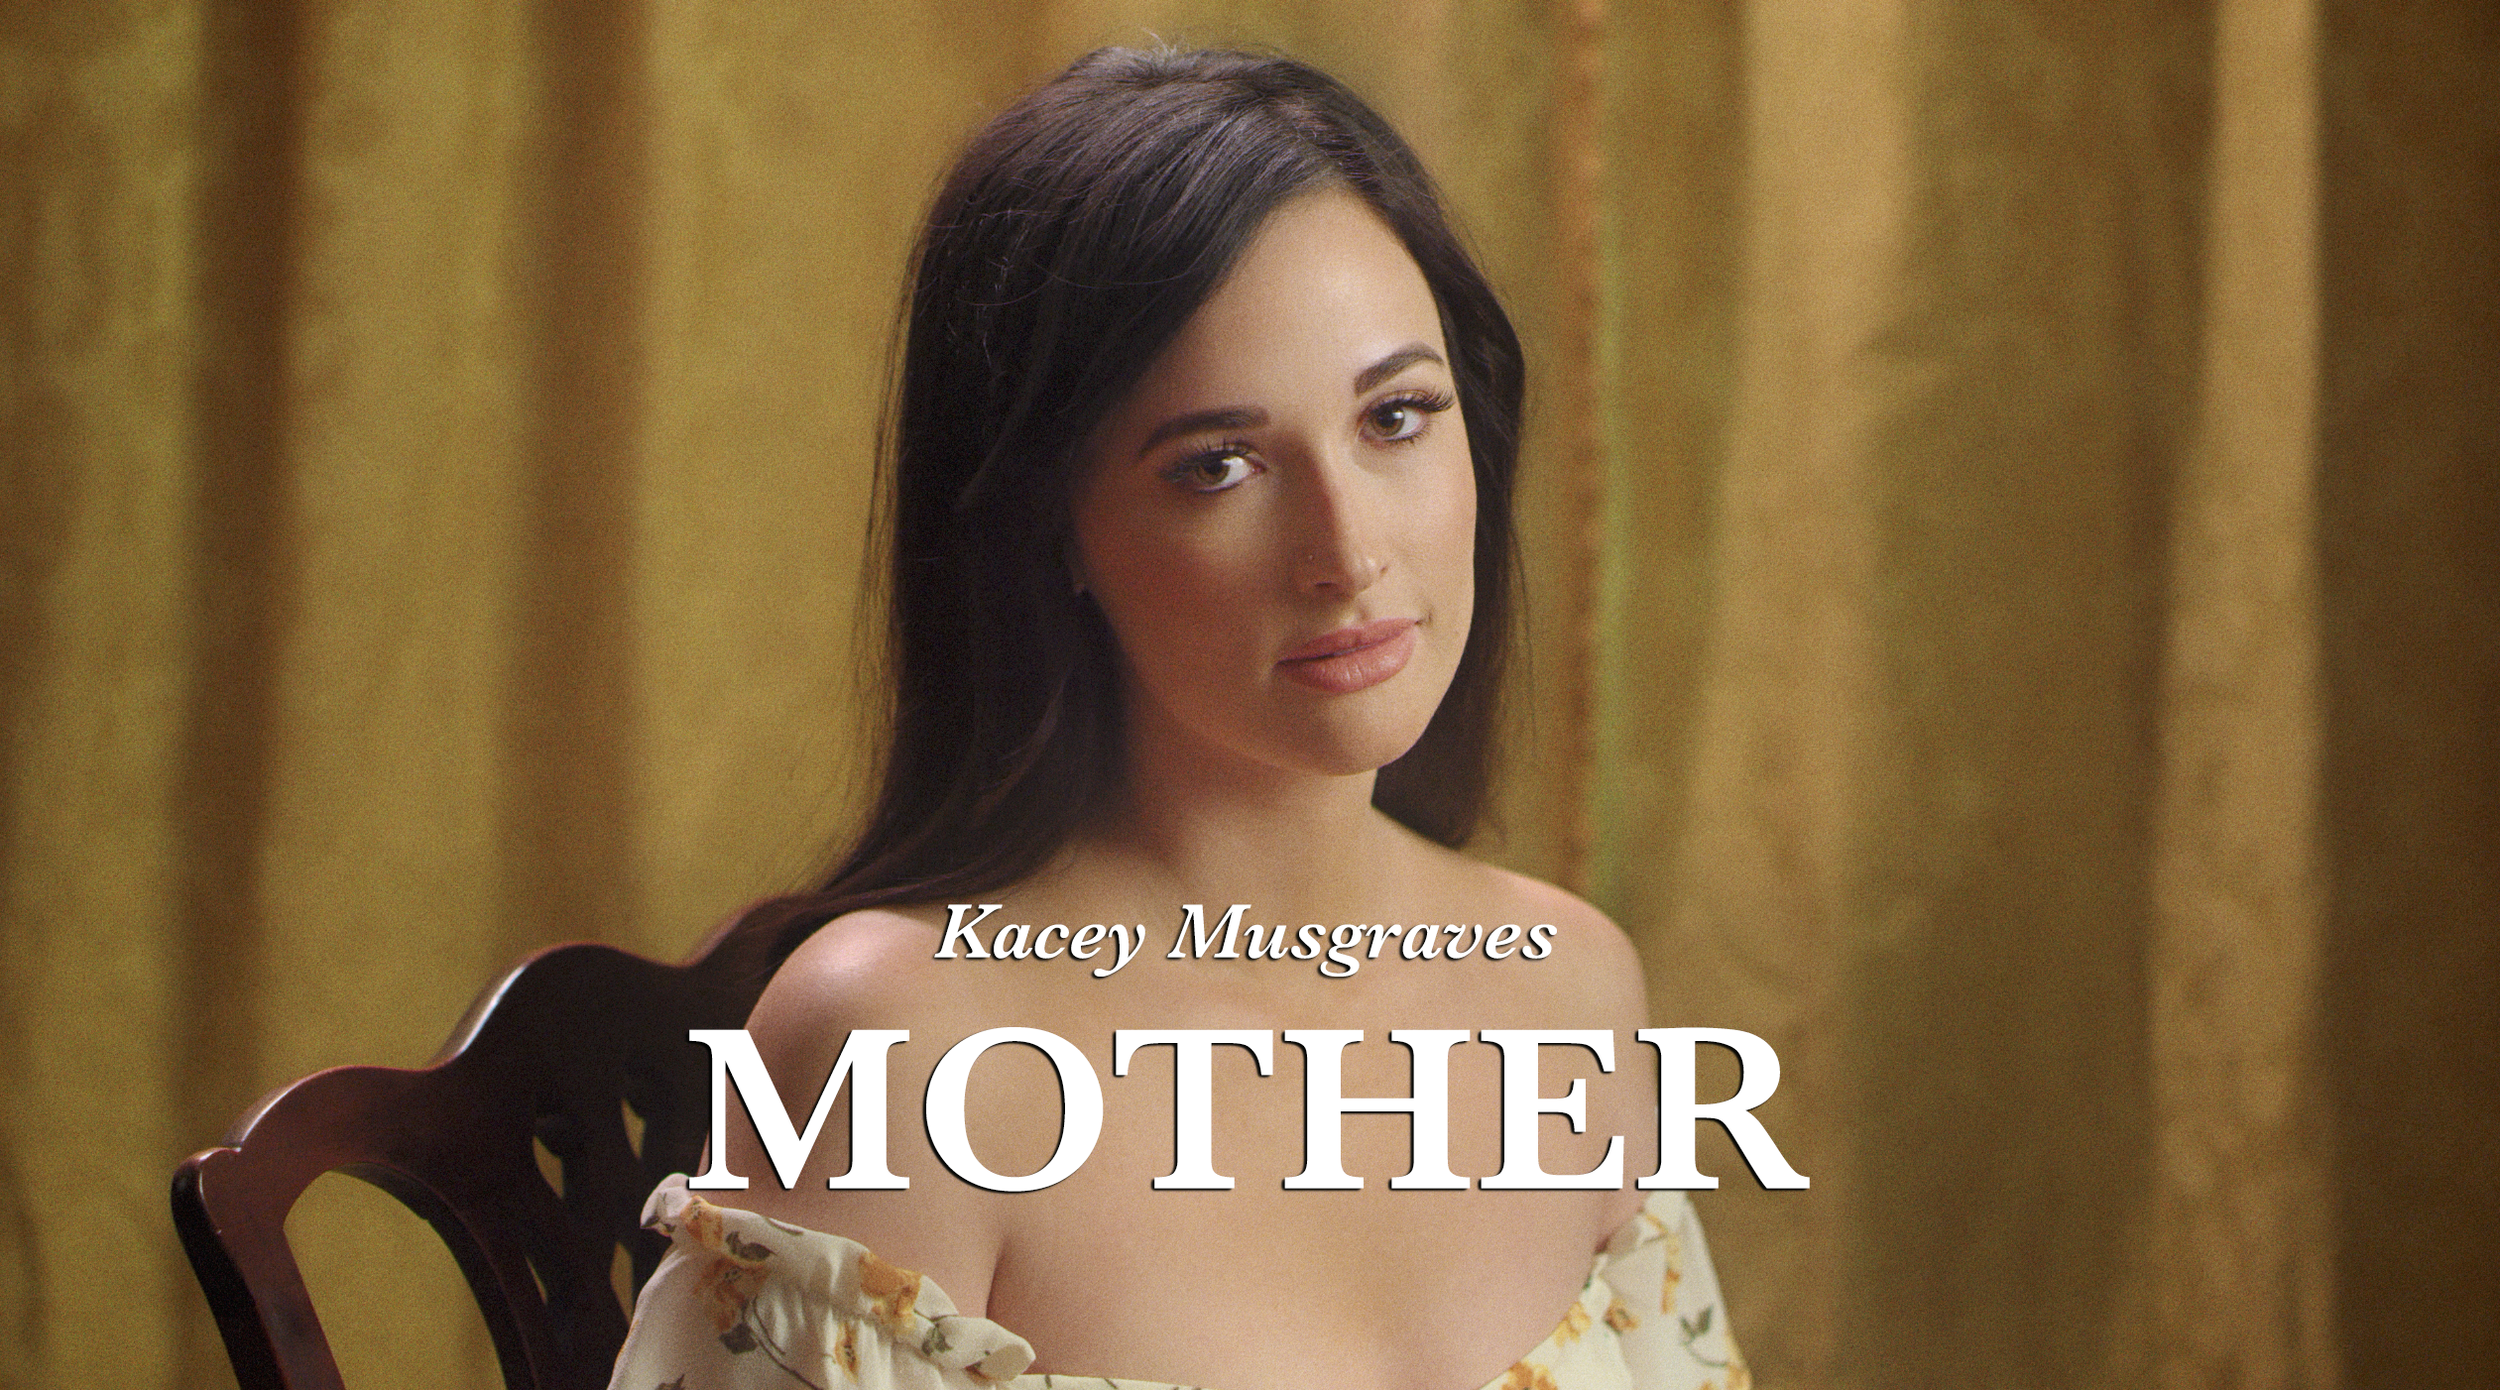 Kacey Musgraves | Mother | Official Music Video